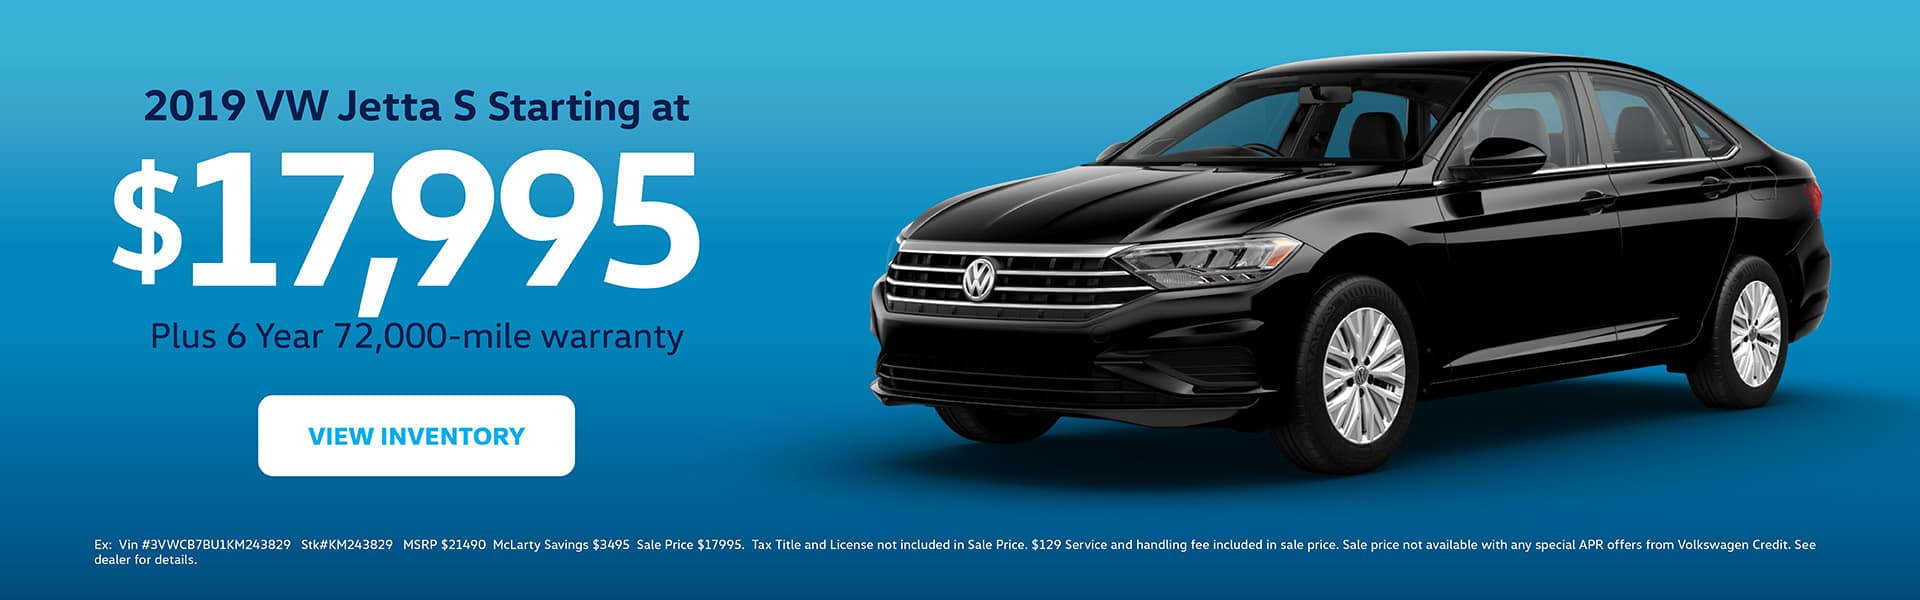 2019 VW Jetta S starting at just $17,995. 6 year/72,000 mile warranty included.